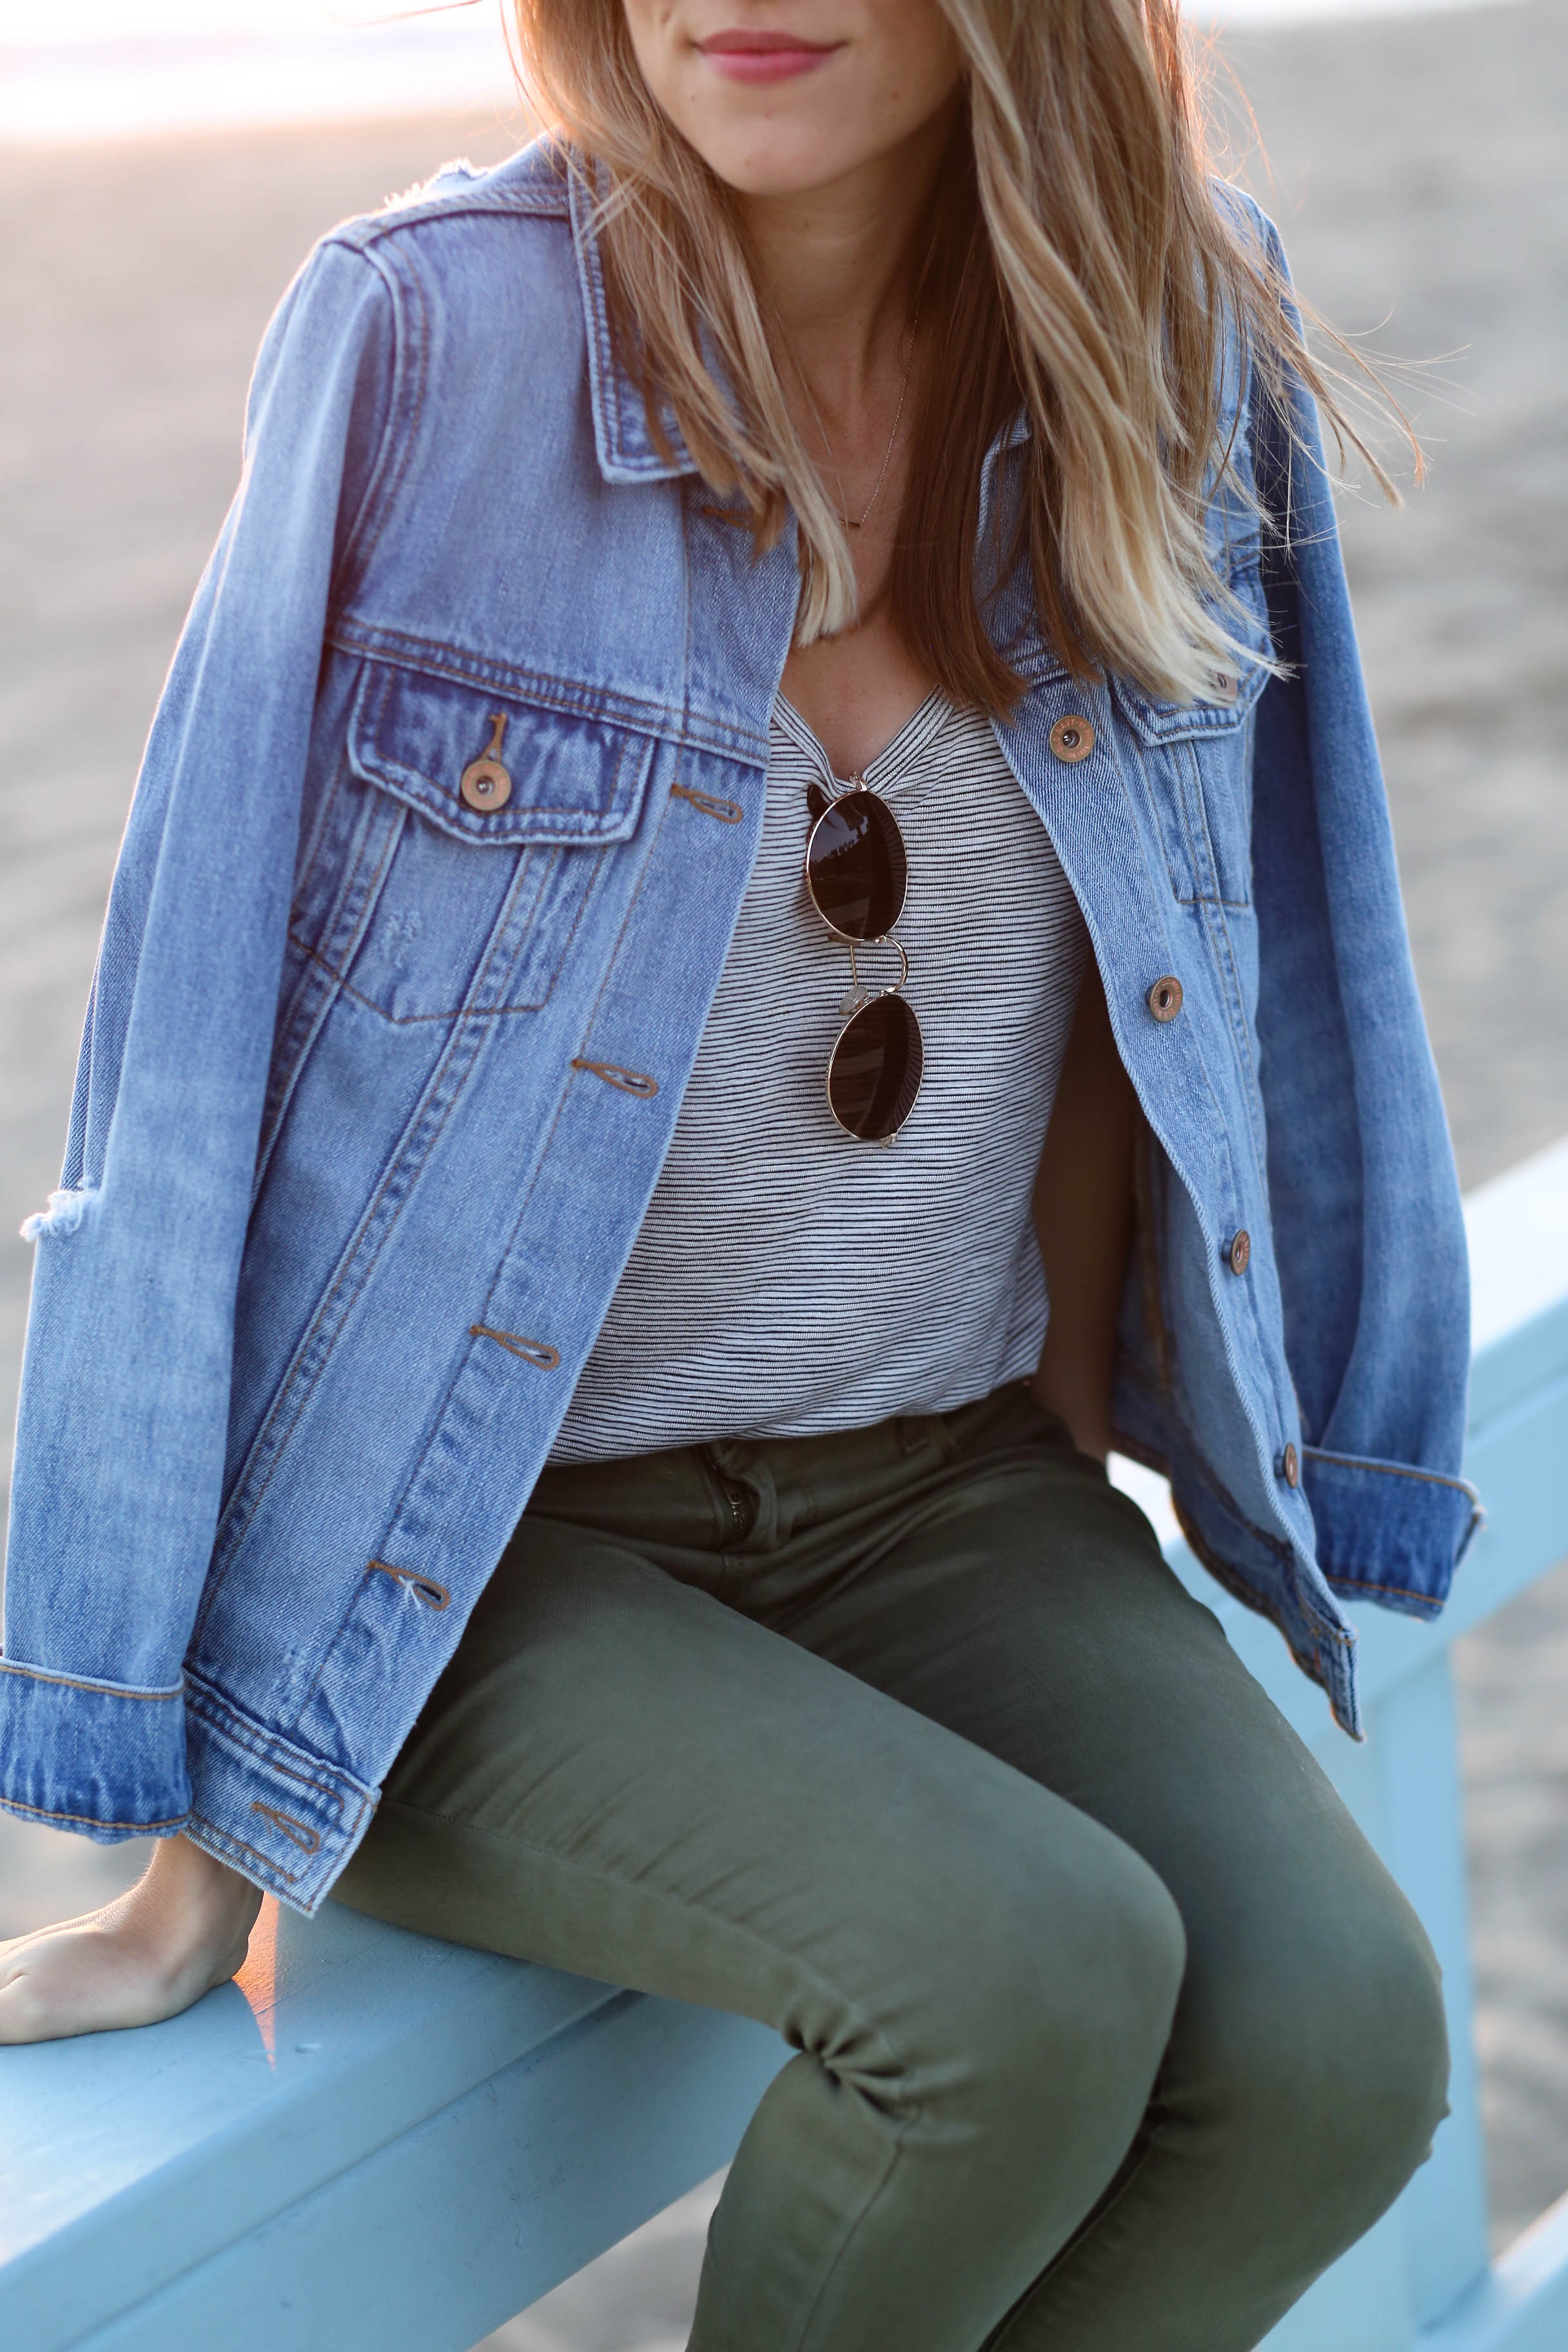 4 Ways To Transition Your Wardrobe From Winter To Spring | Adorned With Love